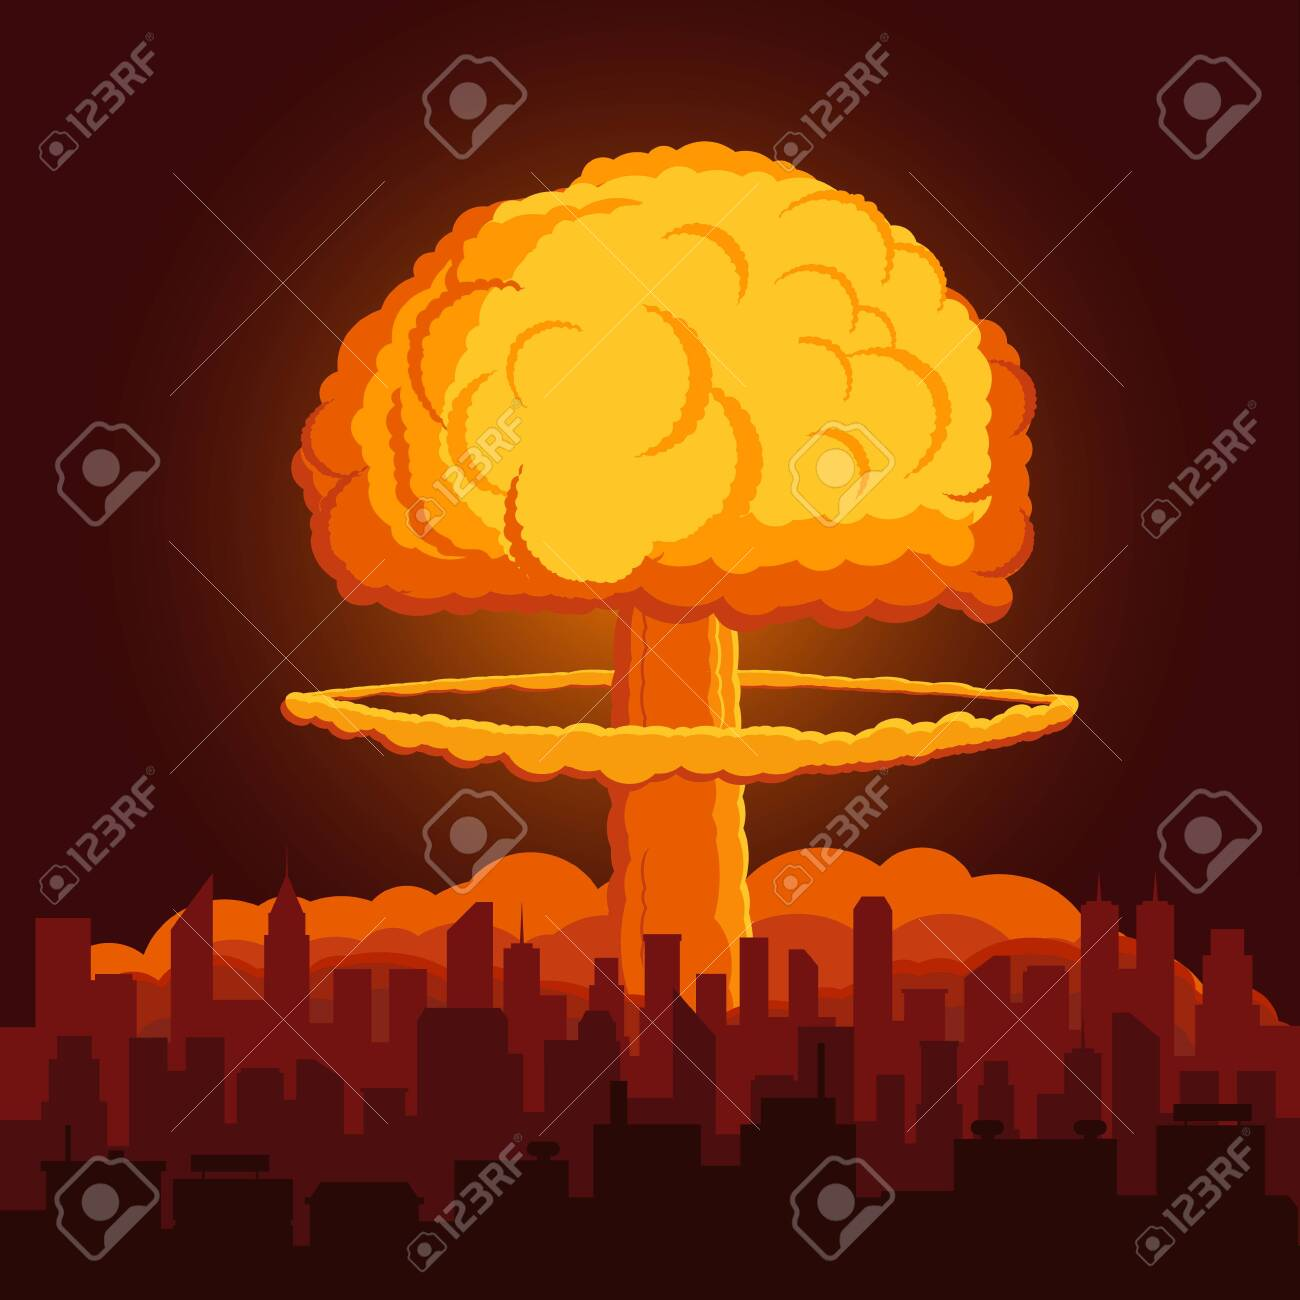 illustration with atomic explosion cloud above city. - 135557464